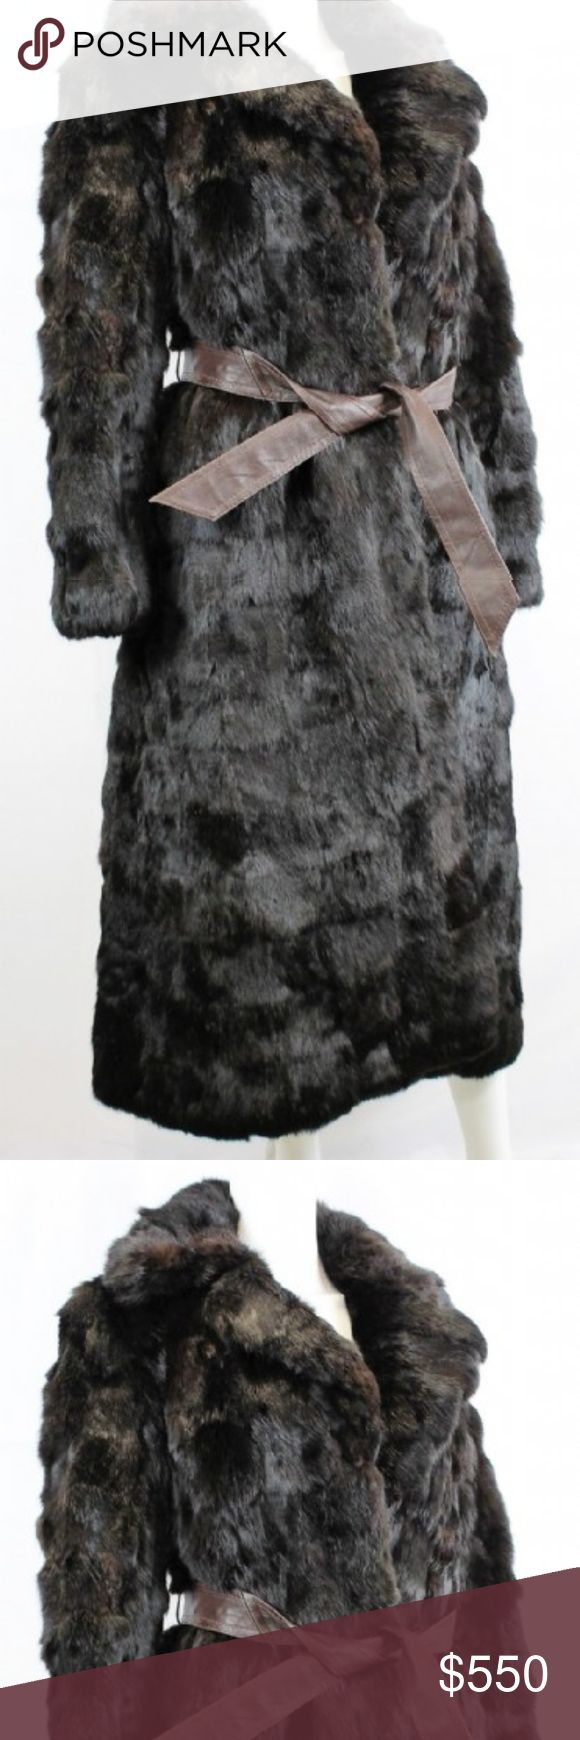 Genuine China Rabbit Fur Coat Leather Trim Dark Brown  Rabbit Fur/Leather Trim  SHOULDERS(in.): 15.0  ARMS(in.): 23.0  CHEST/BUST(in.): 36.0  LENGTH(in.): 52.0 General Wear Crown Colony Furriers Jackets & Coats Trench Coats